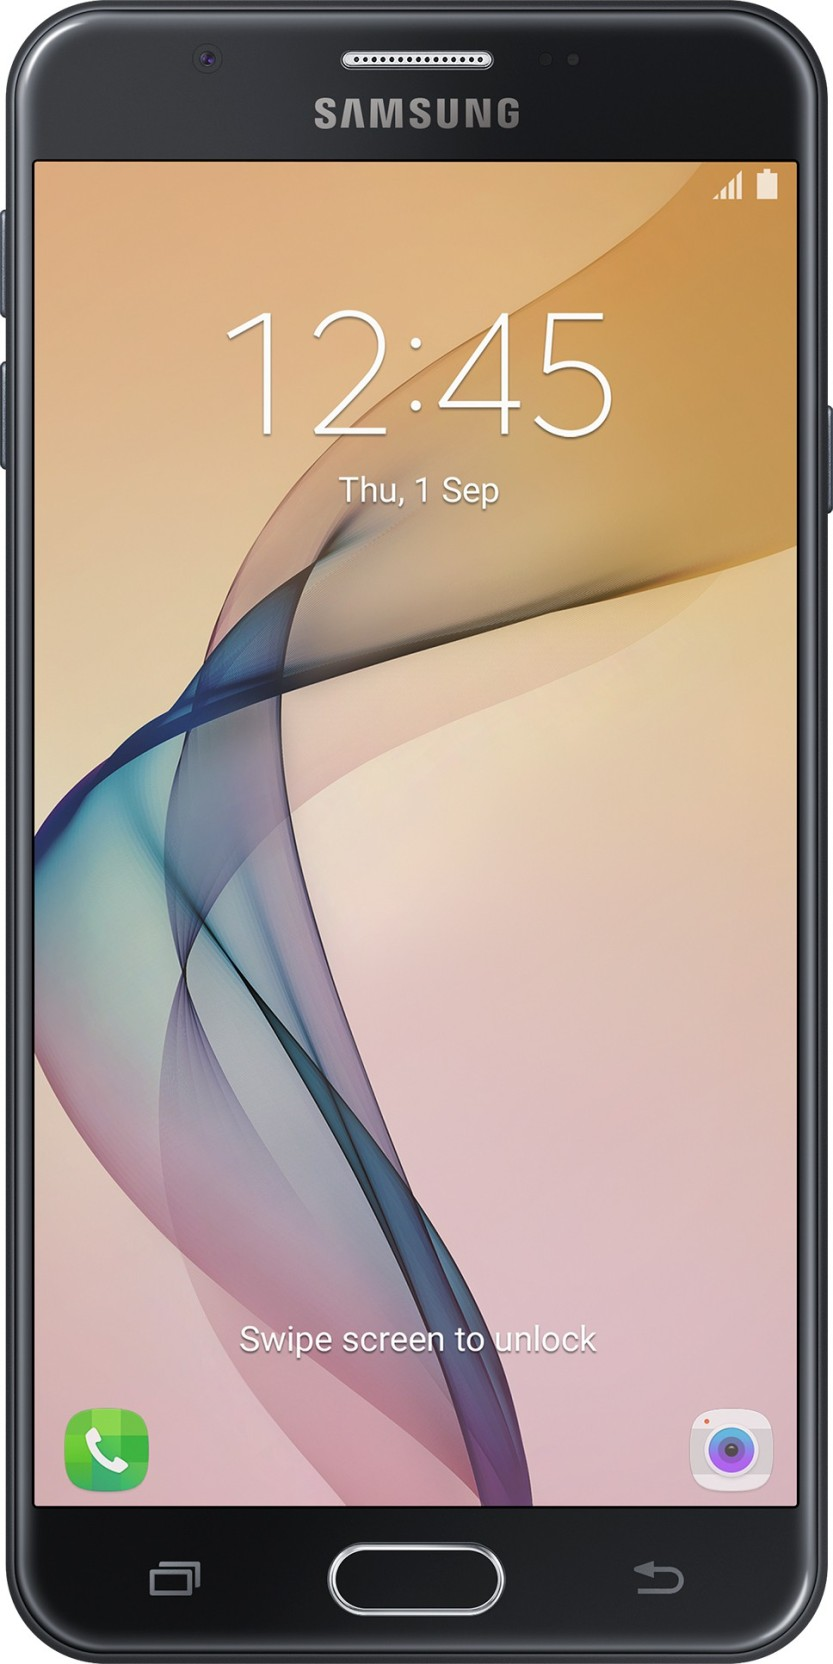 Samsung Galaxy J5 Prime Black 16 Gb Online At Best Price Only On Hp Android Add To Cart